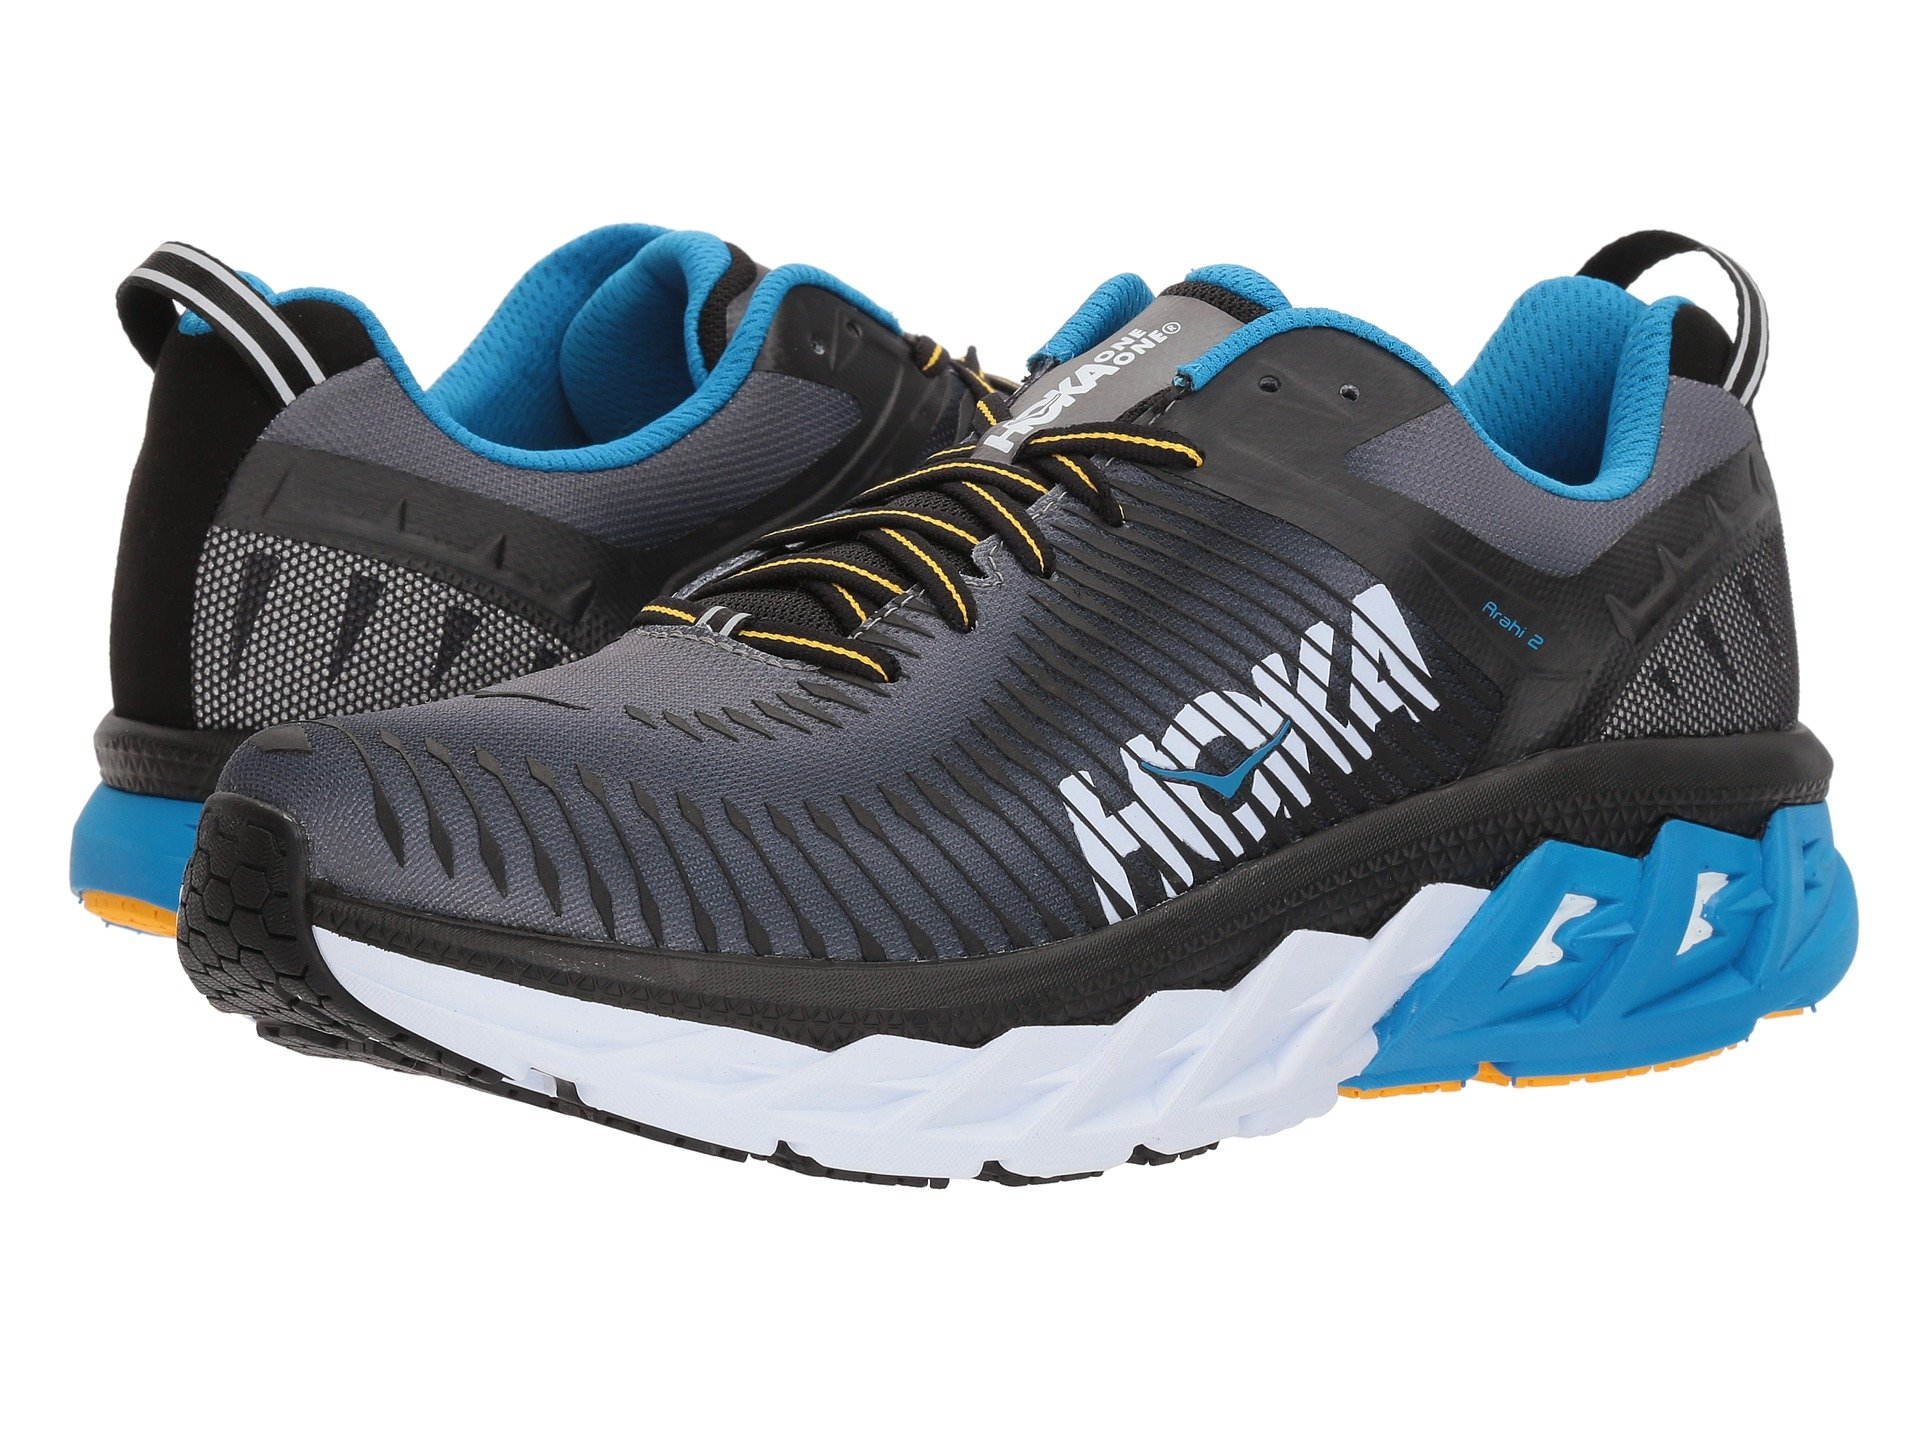 HOKA ONE ONE ARAHI 2 M - Black / Charcoal Grey